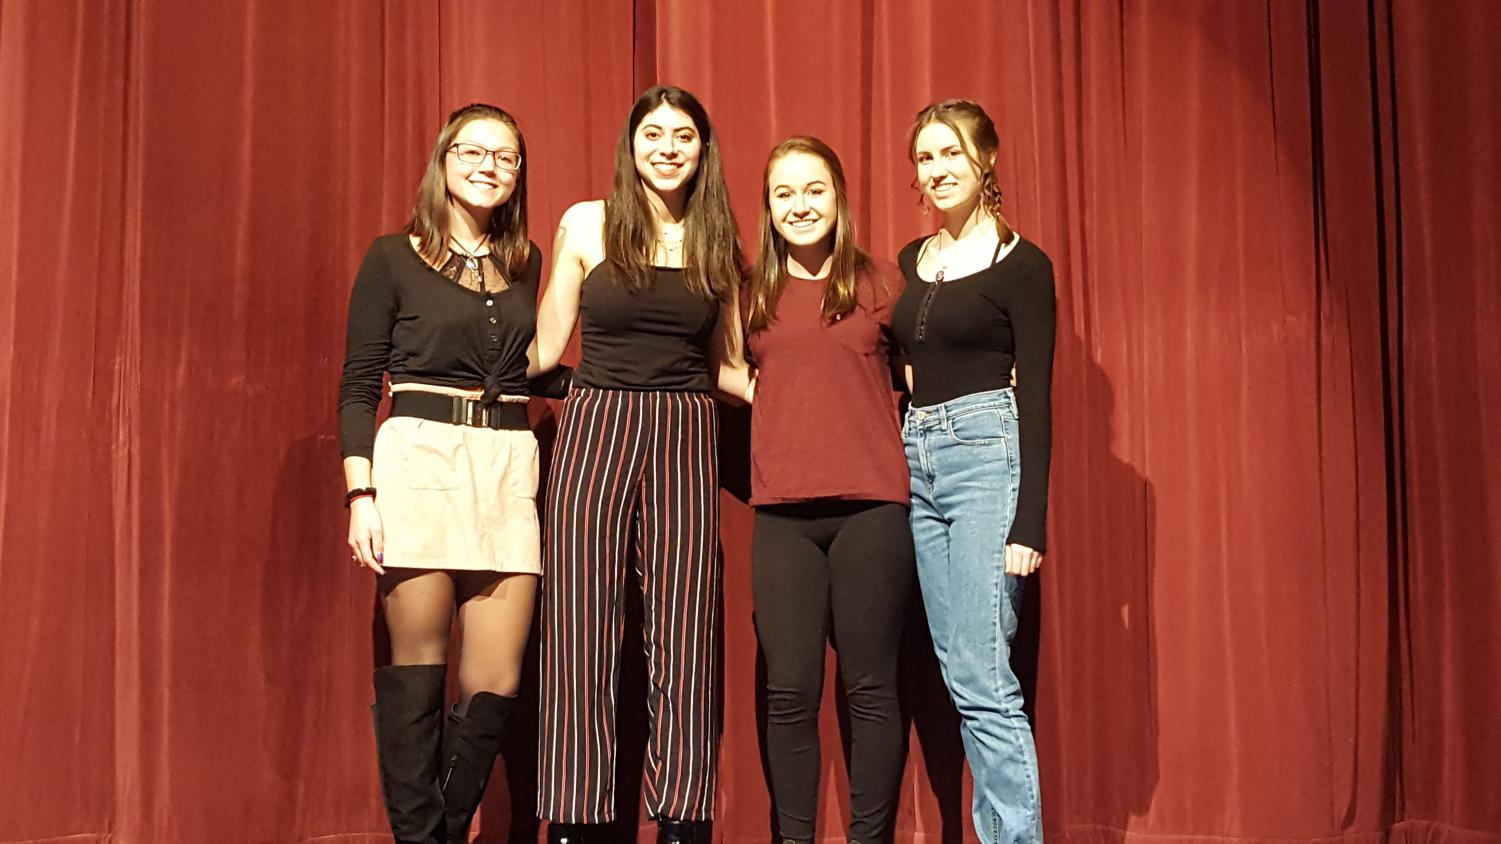 The winners of the Creative Writing poetry slam pose for a picture. From left to right: Isabelle Myers, Justine Golata, Katie Svehla, Abbey Connolly